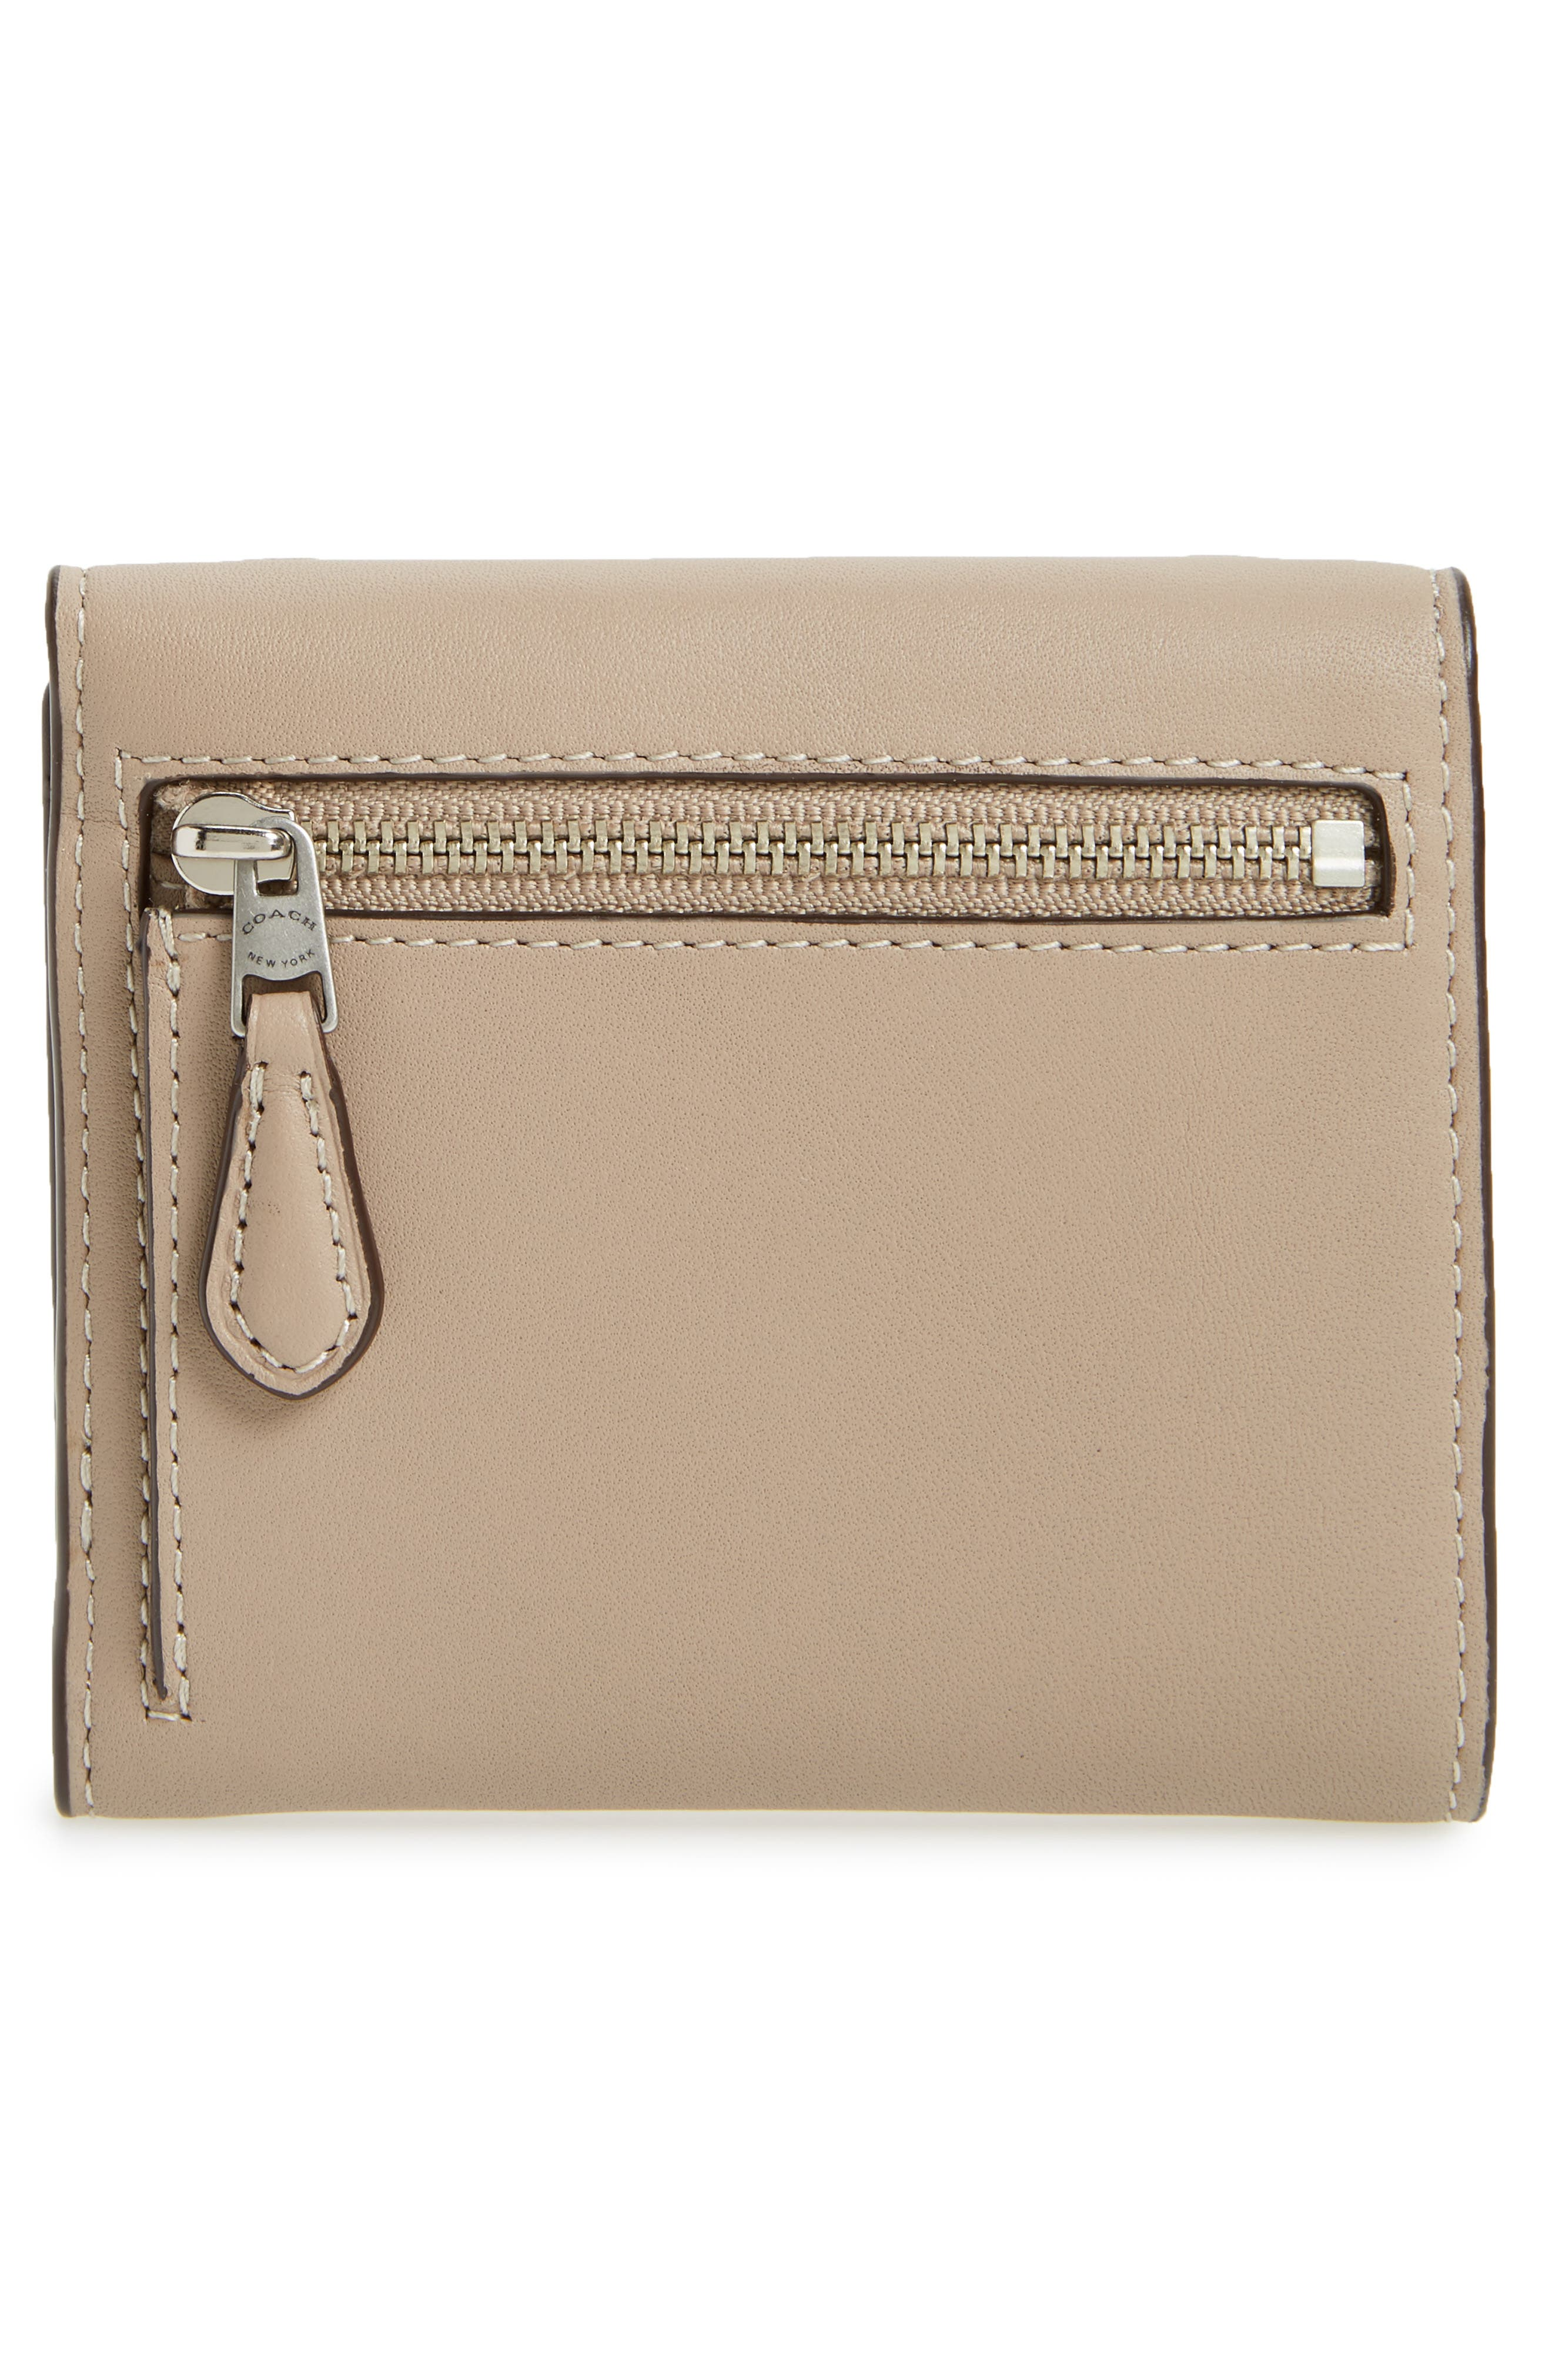 Small Tea Rose Calfskin Leather Trifold Wallet,                             Alternate thumbnail 4, color,                             020